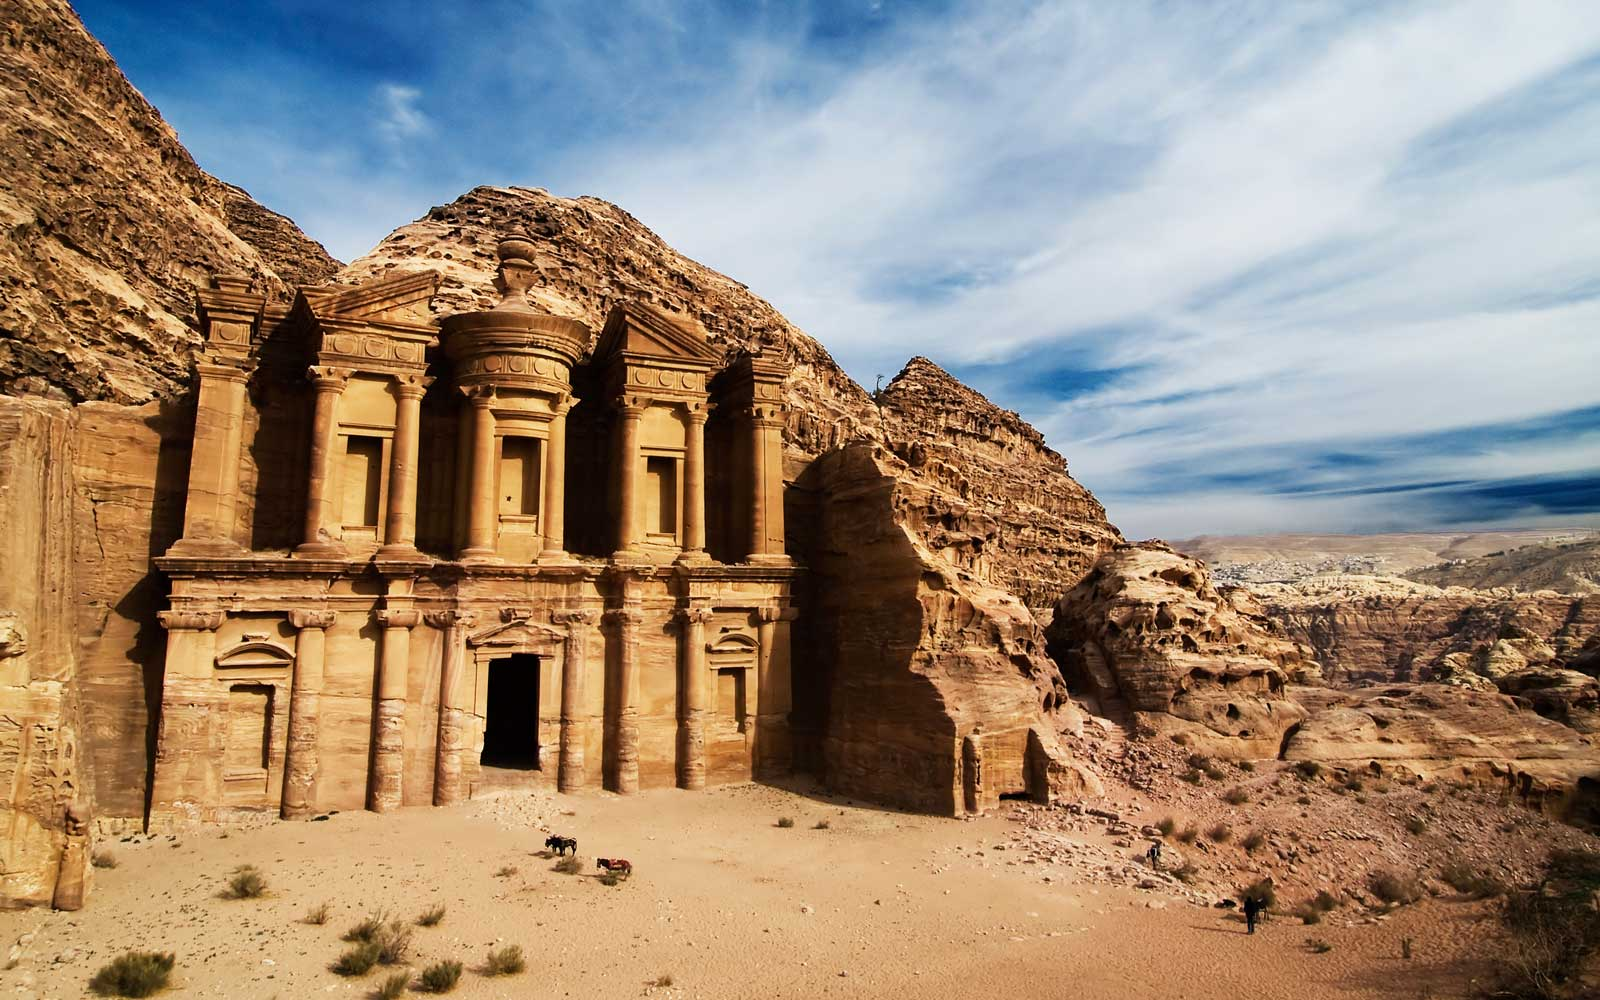 Find My Inner Indiana Jones in Jordan